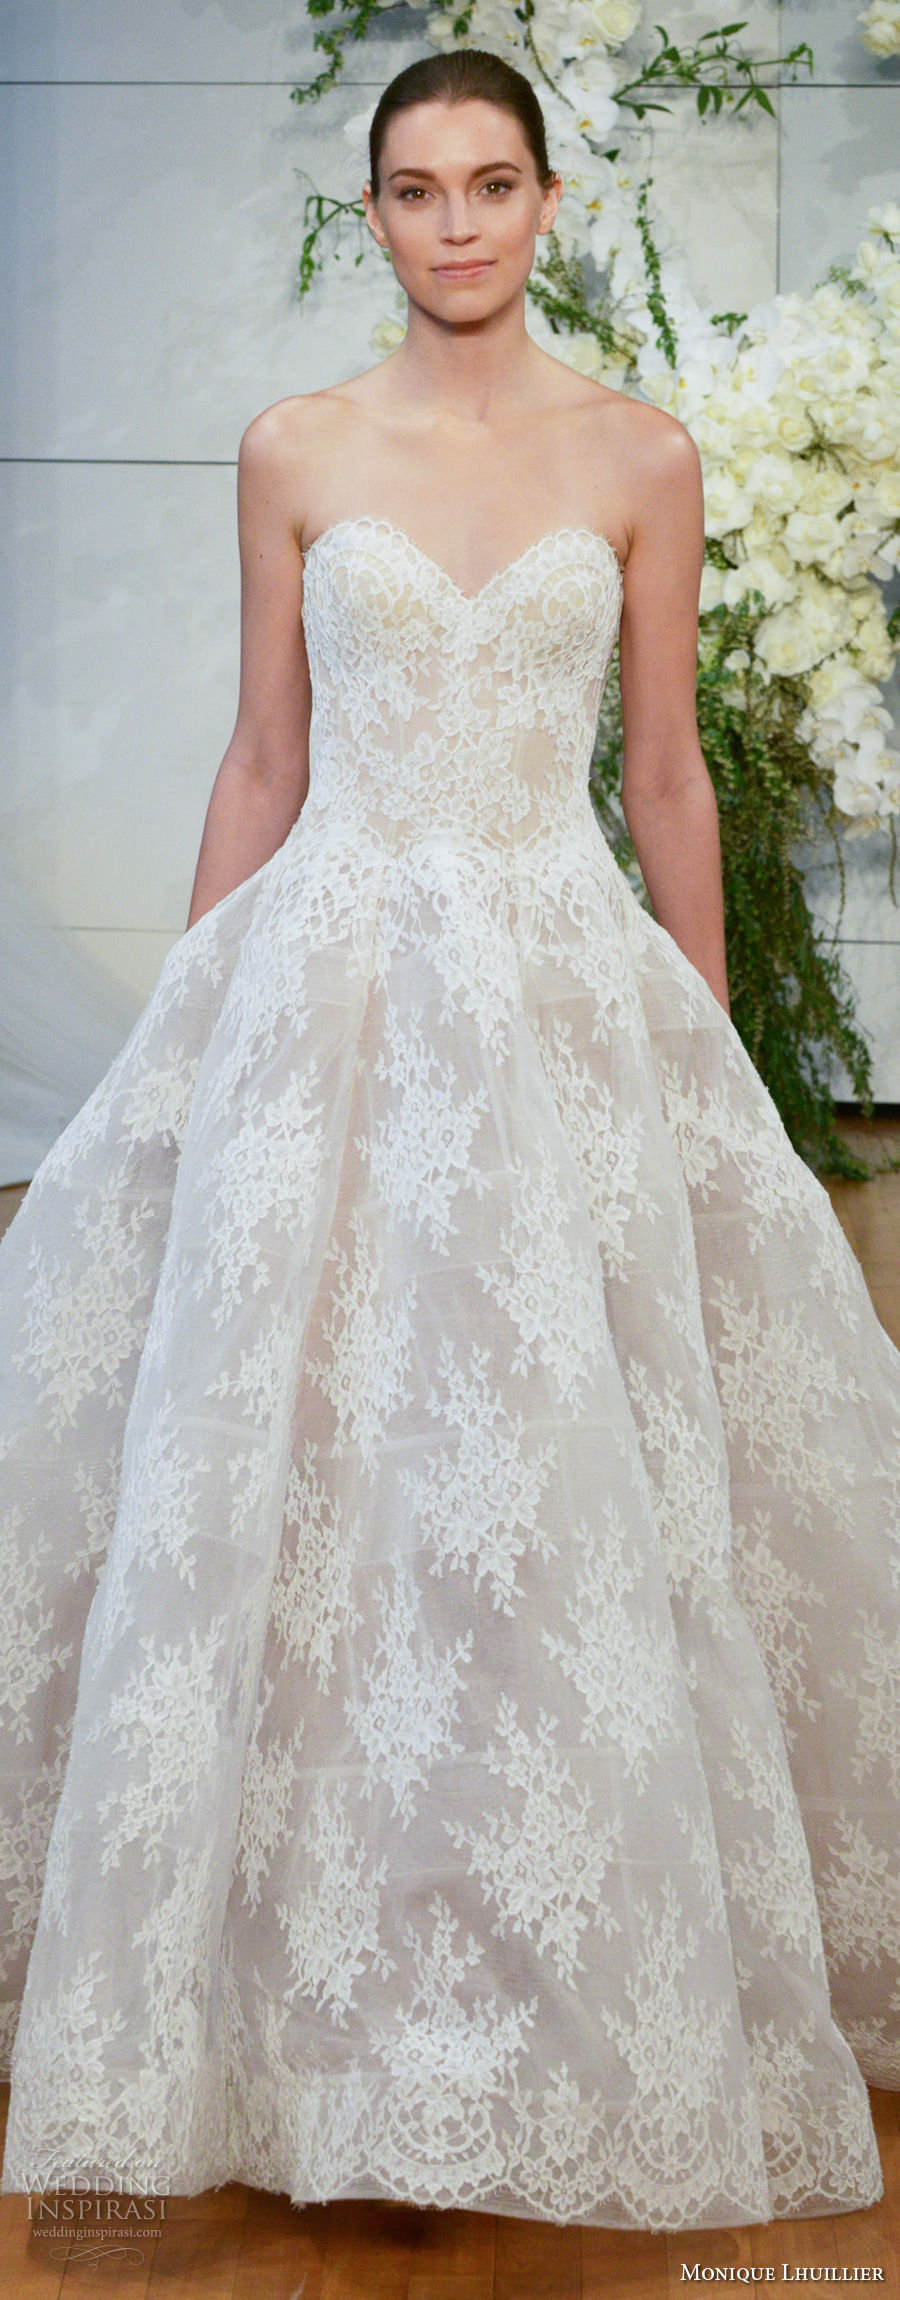 monique lhuillier spring 2018 bridal strapless sweetheart neckline full embellishment lace romantic princess ball gown wedding dress royal train (alexandra) zv